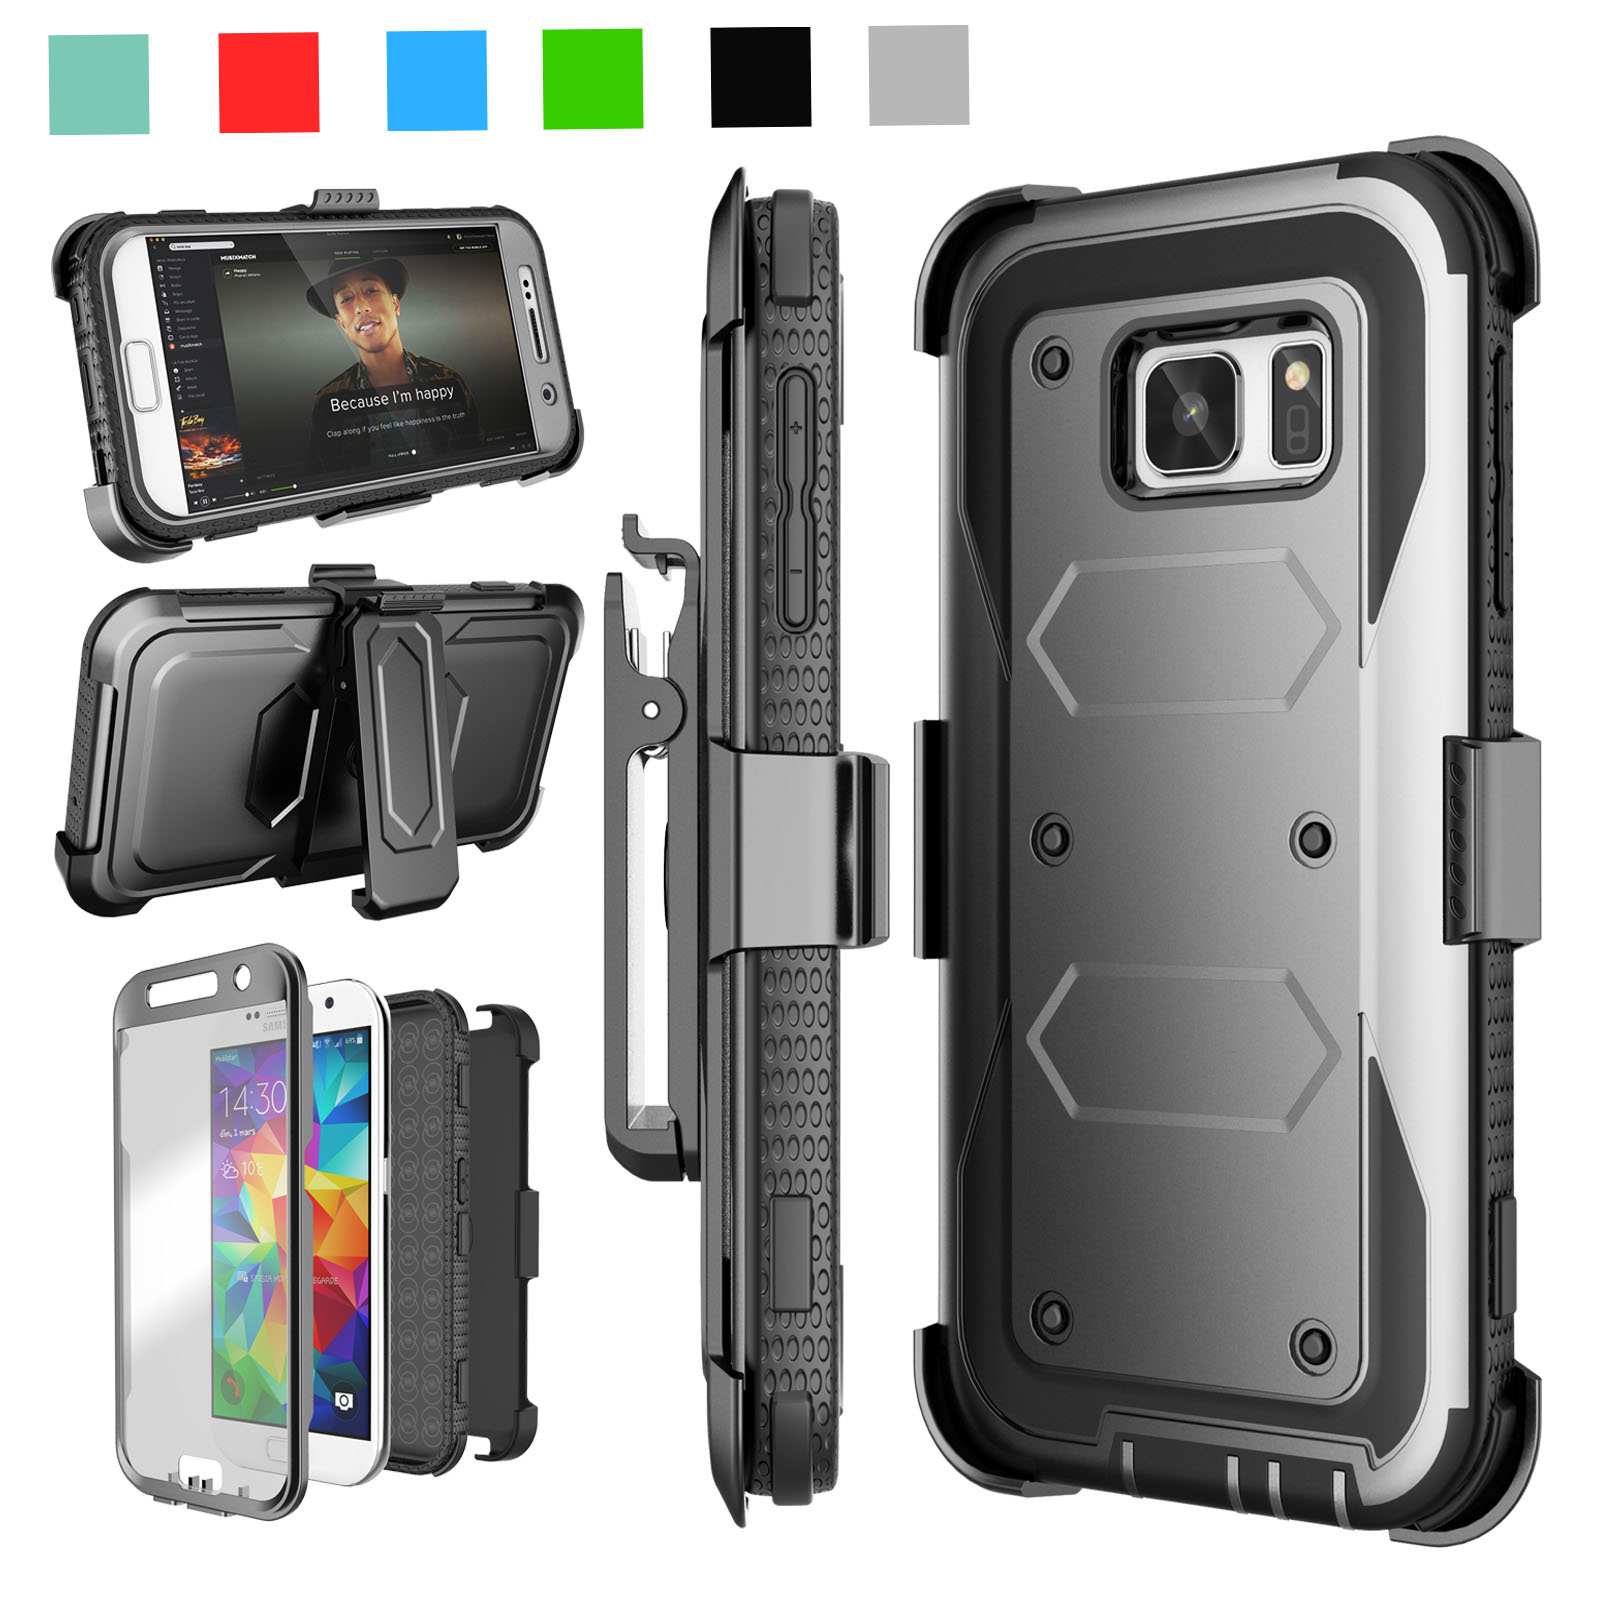 Galaxy S7 Case, [Built-in Screen Protector] Shock Absorbing Holster Locking Belt Clip Defender Heavy Case Cover For Samsung Galaxy S7 S VII G930 GS7 All Carriers Njjex [New Shell]